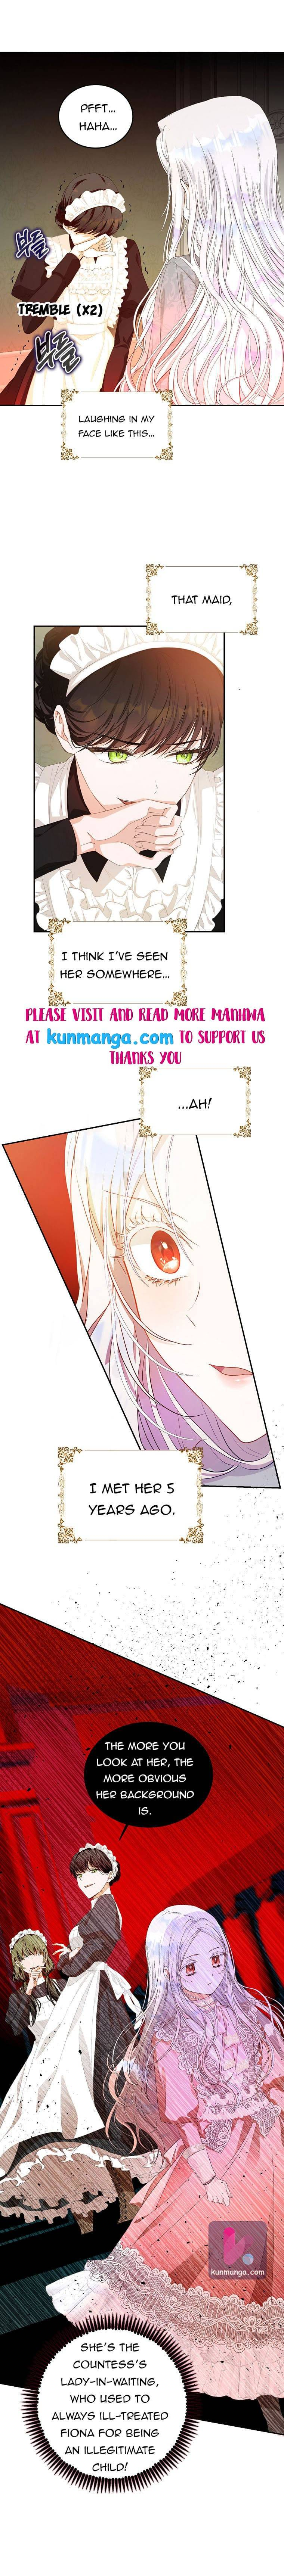 I Became the Wife of the Male Lead - chapter 21 - #2